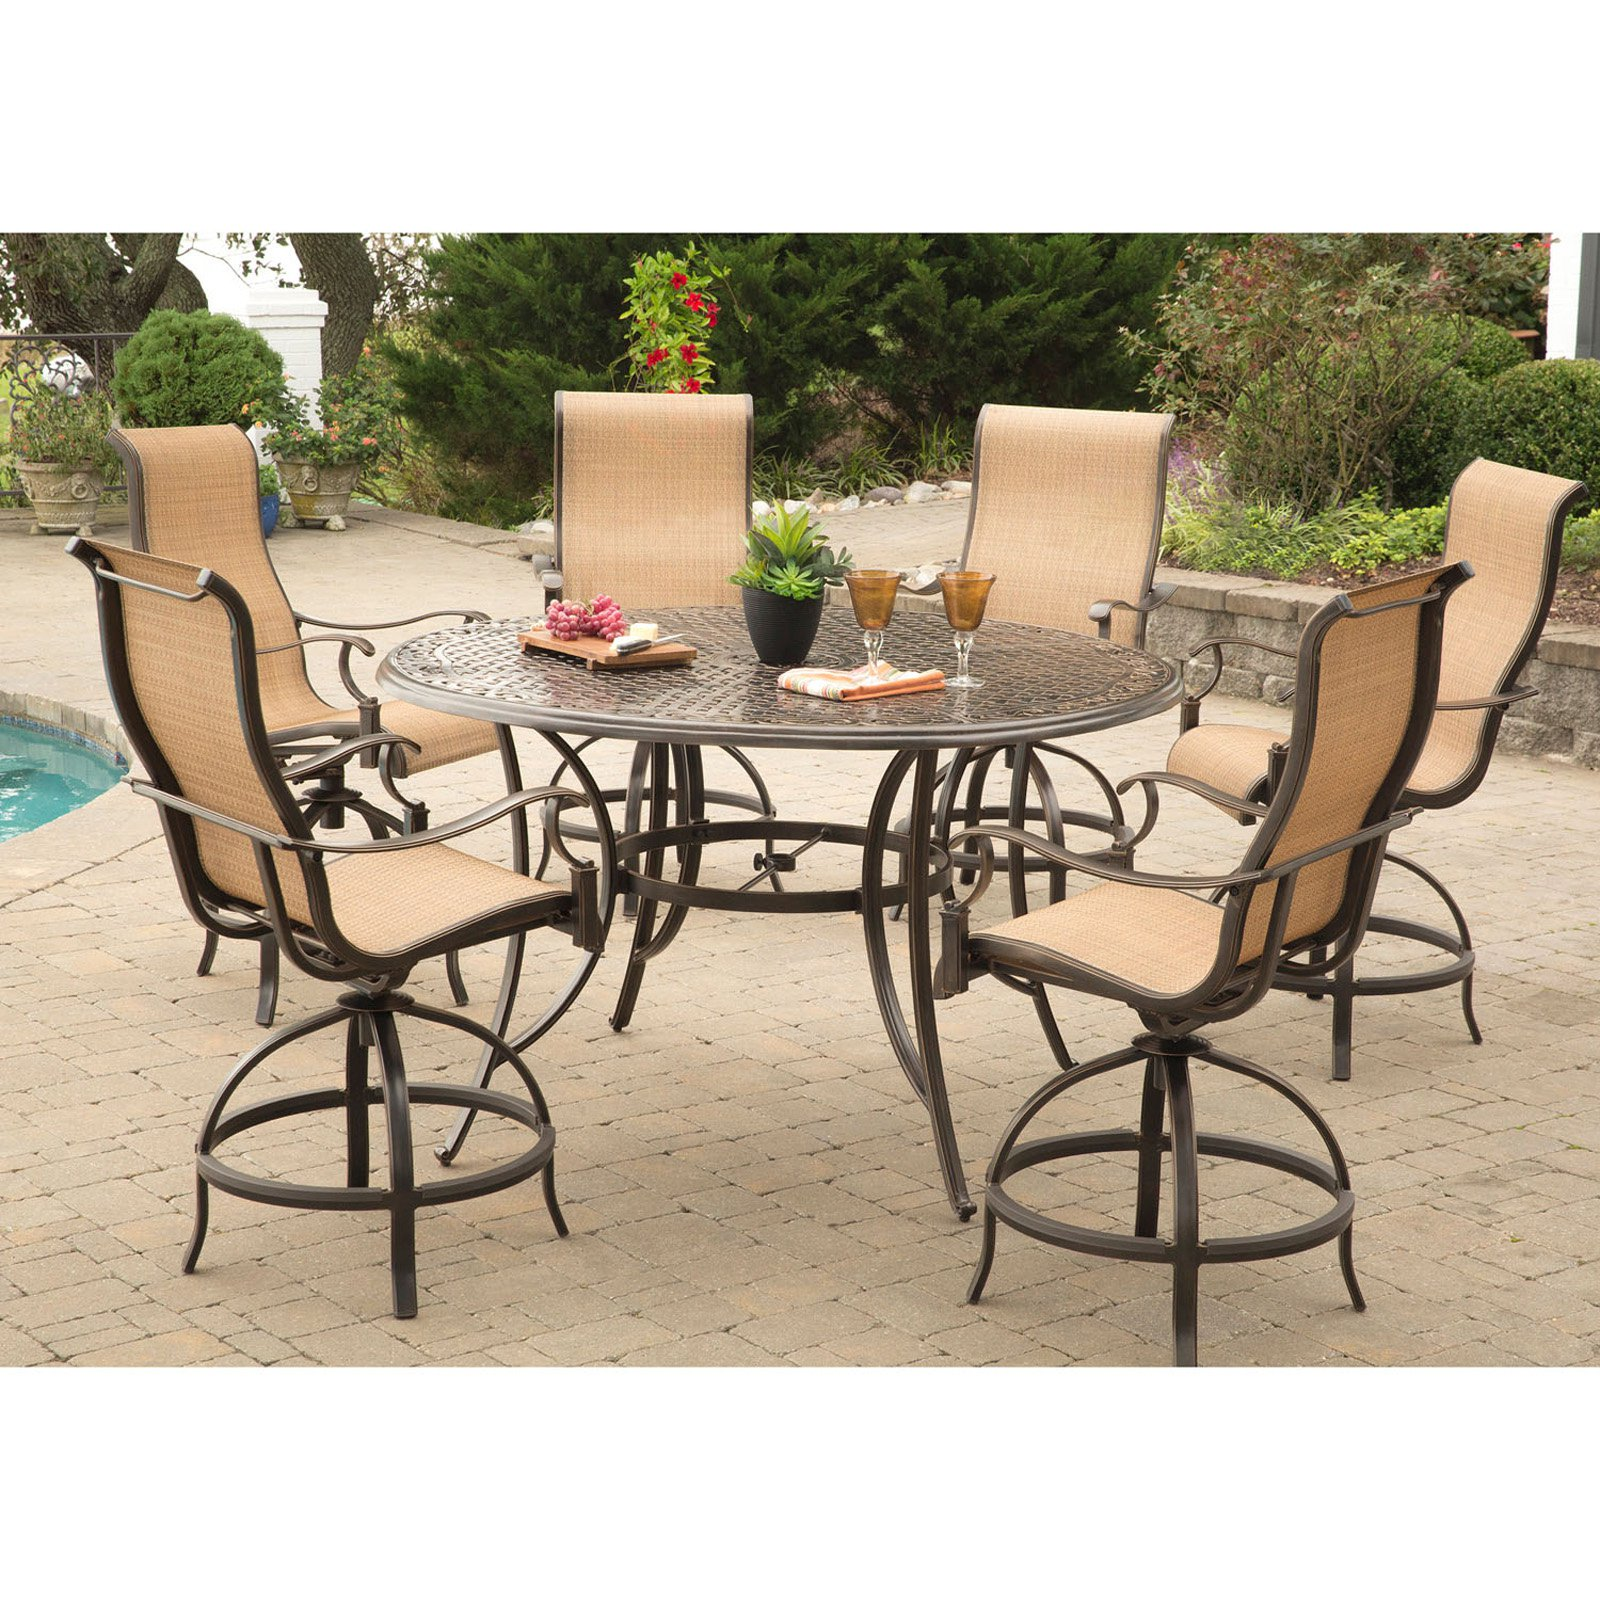 Hanover Manor 7-Piece Outdoor High-Dining Bar Set